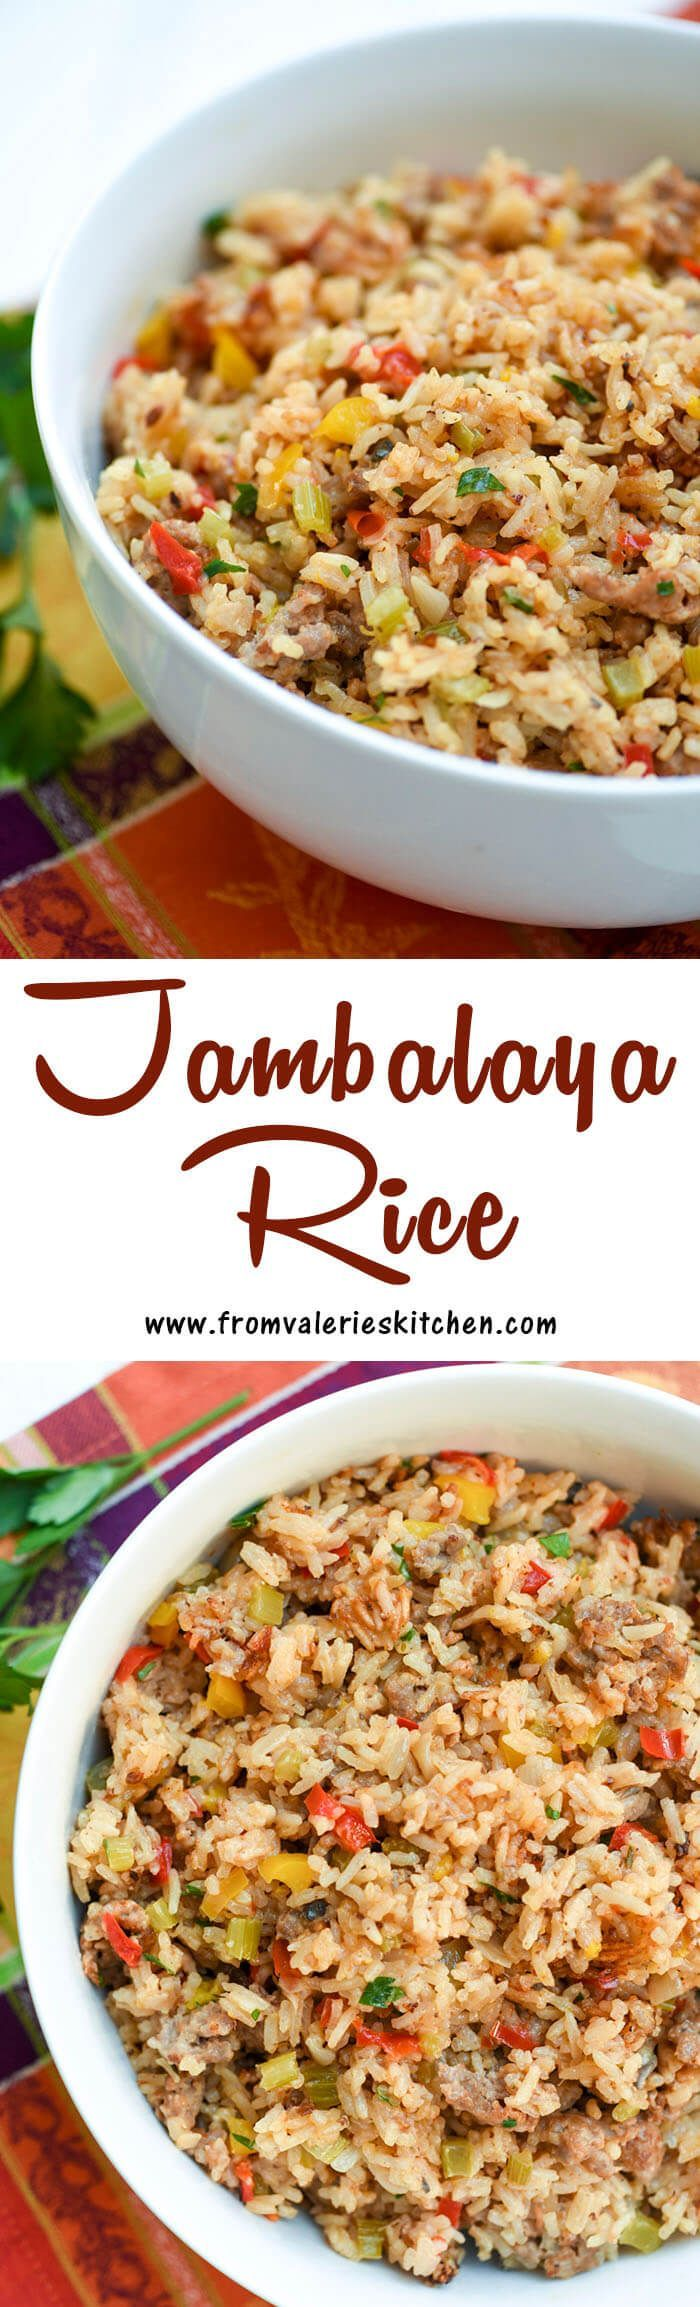 This Cajun-inspired Jambalaya Rice is filled with sausage, onions, peppers, and garlic to create a satisfying and delicious side dish.